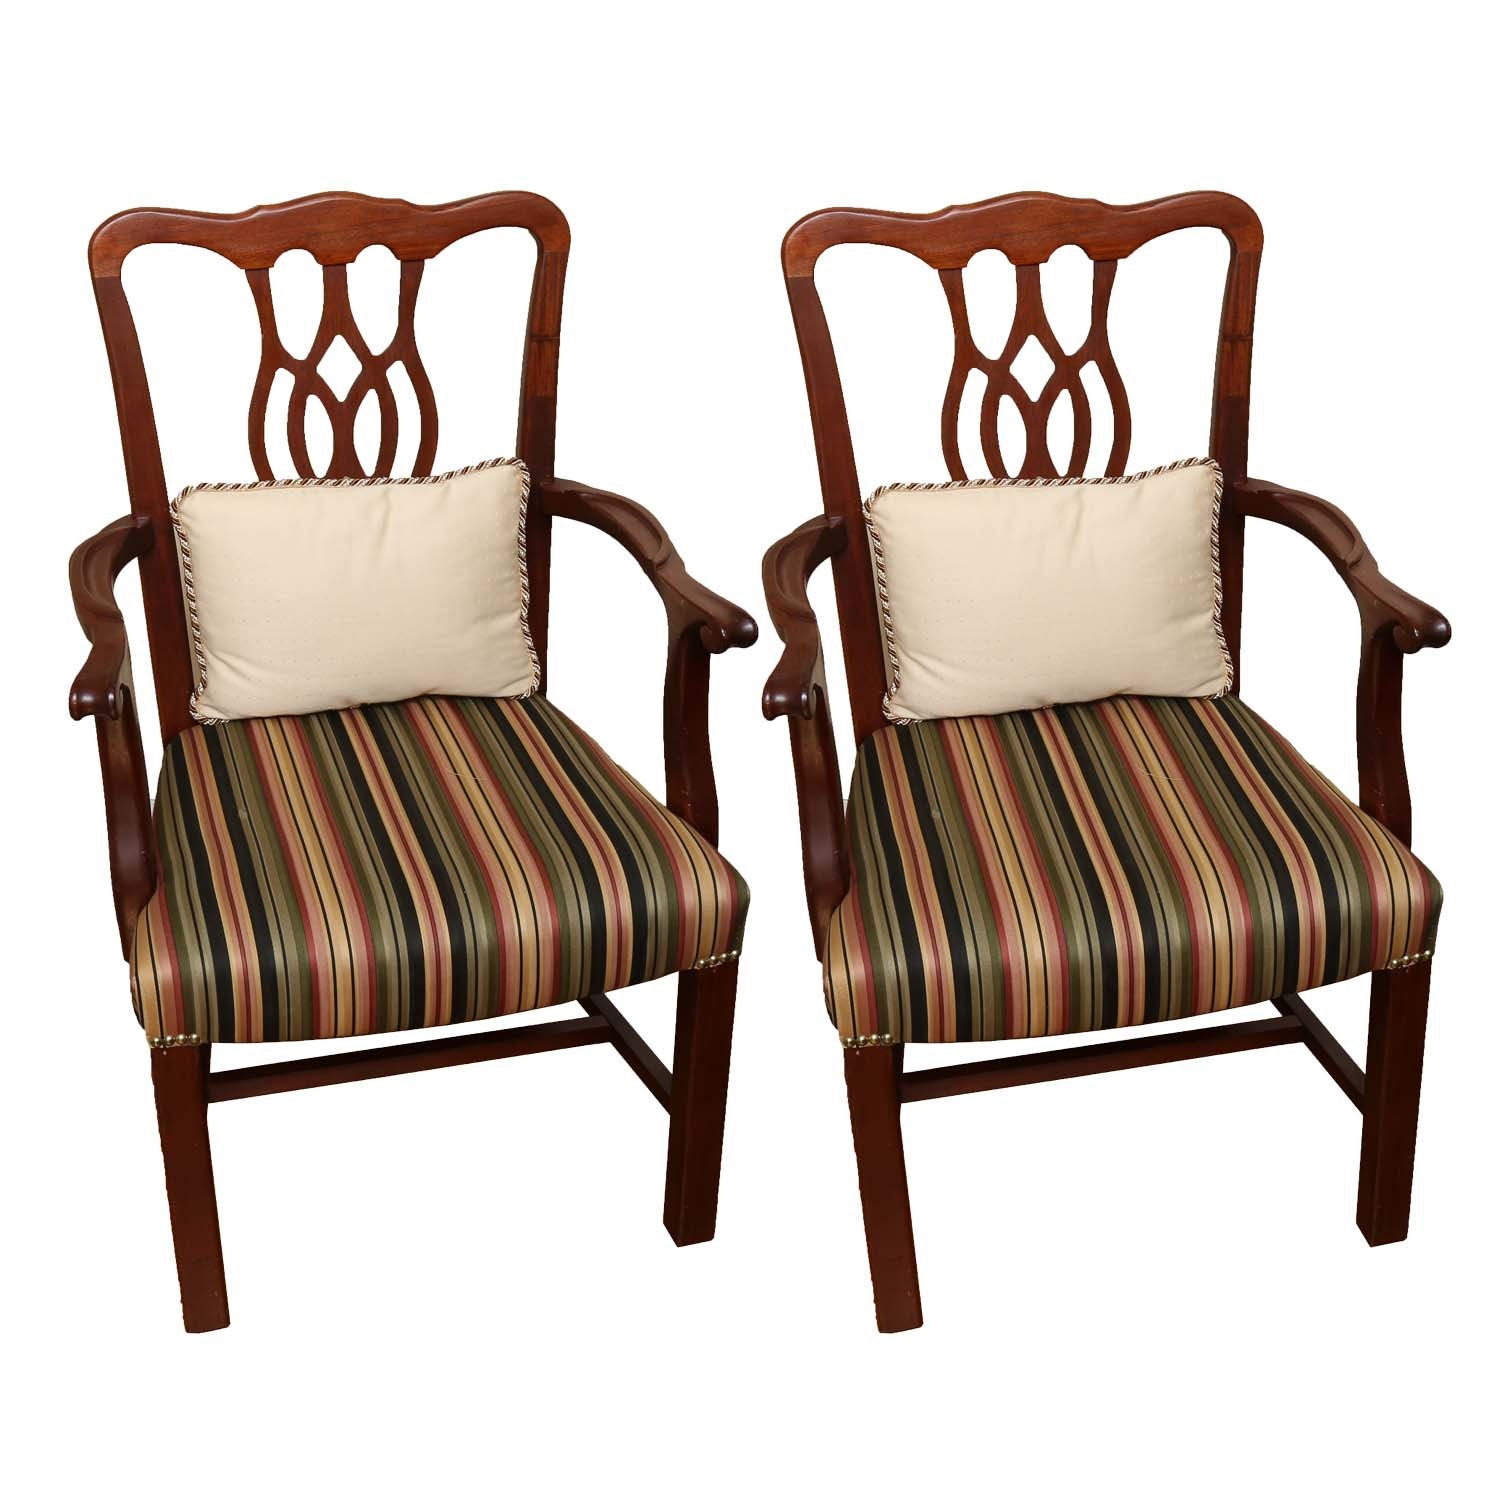 Oversized Striped Accent Chair EBTH